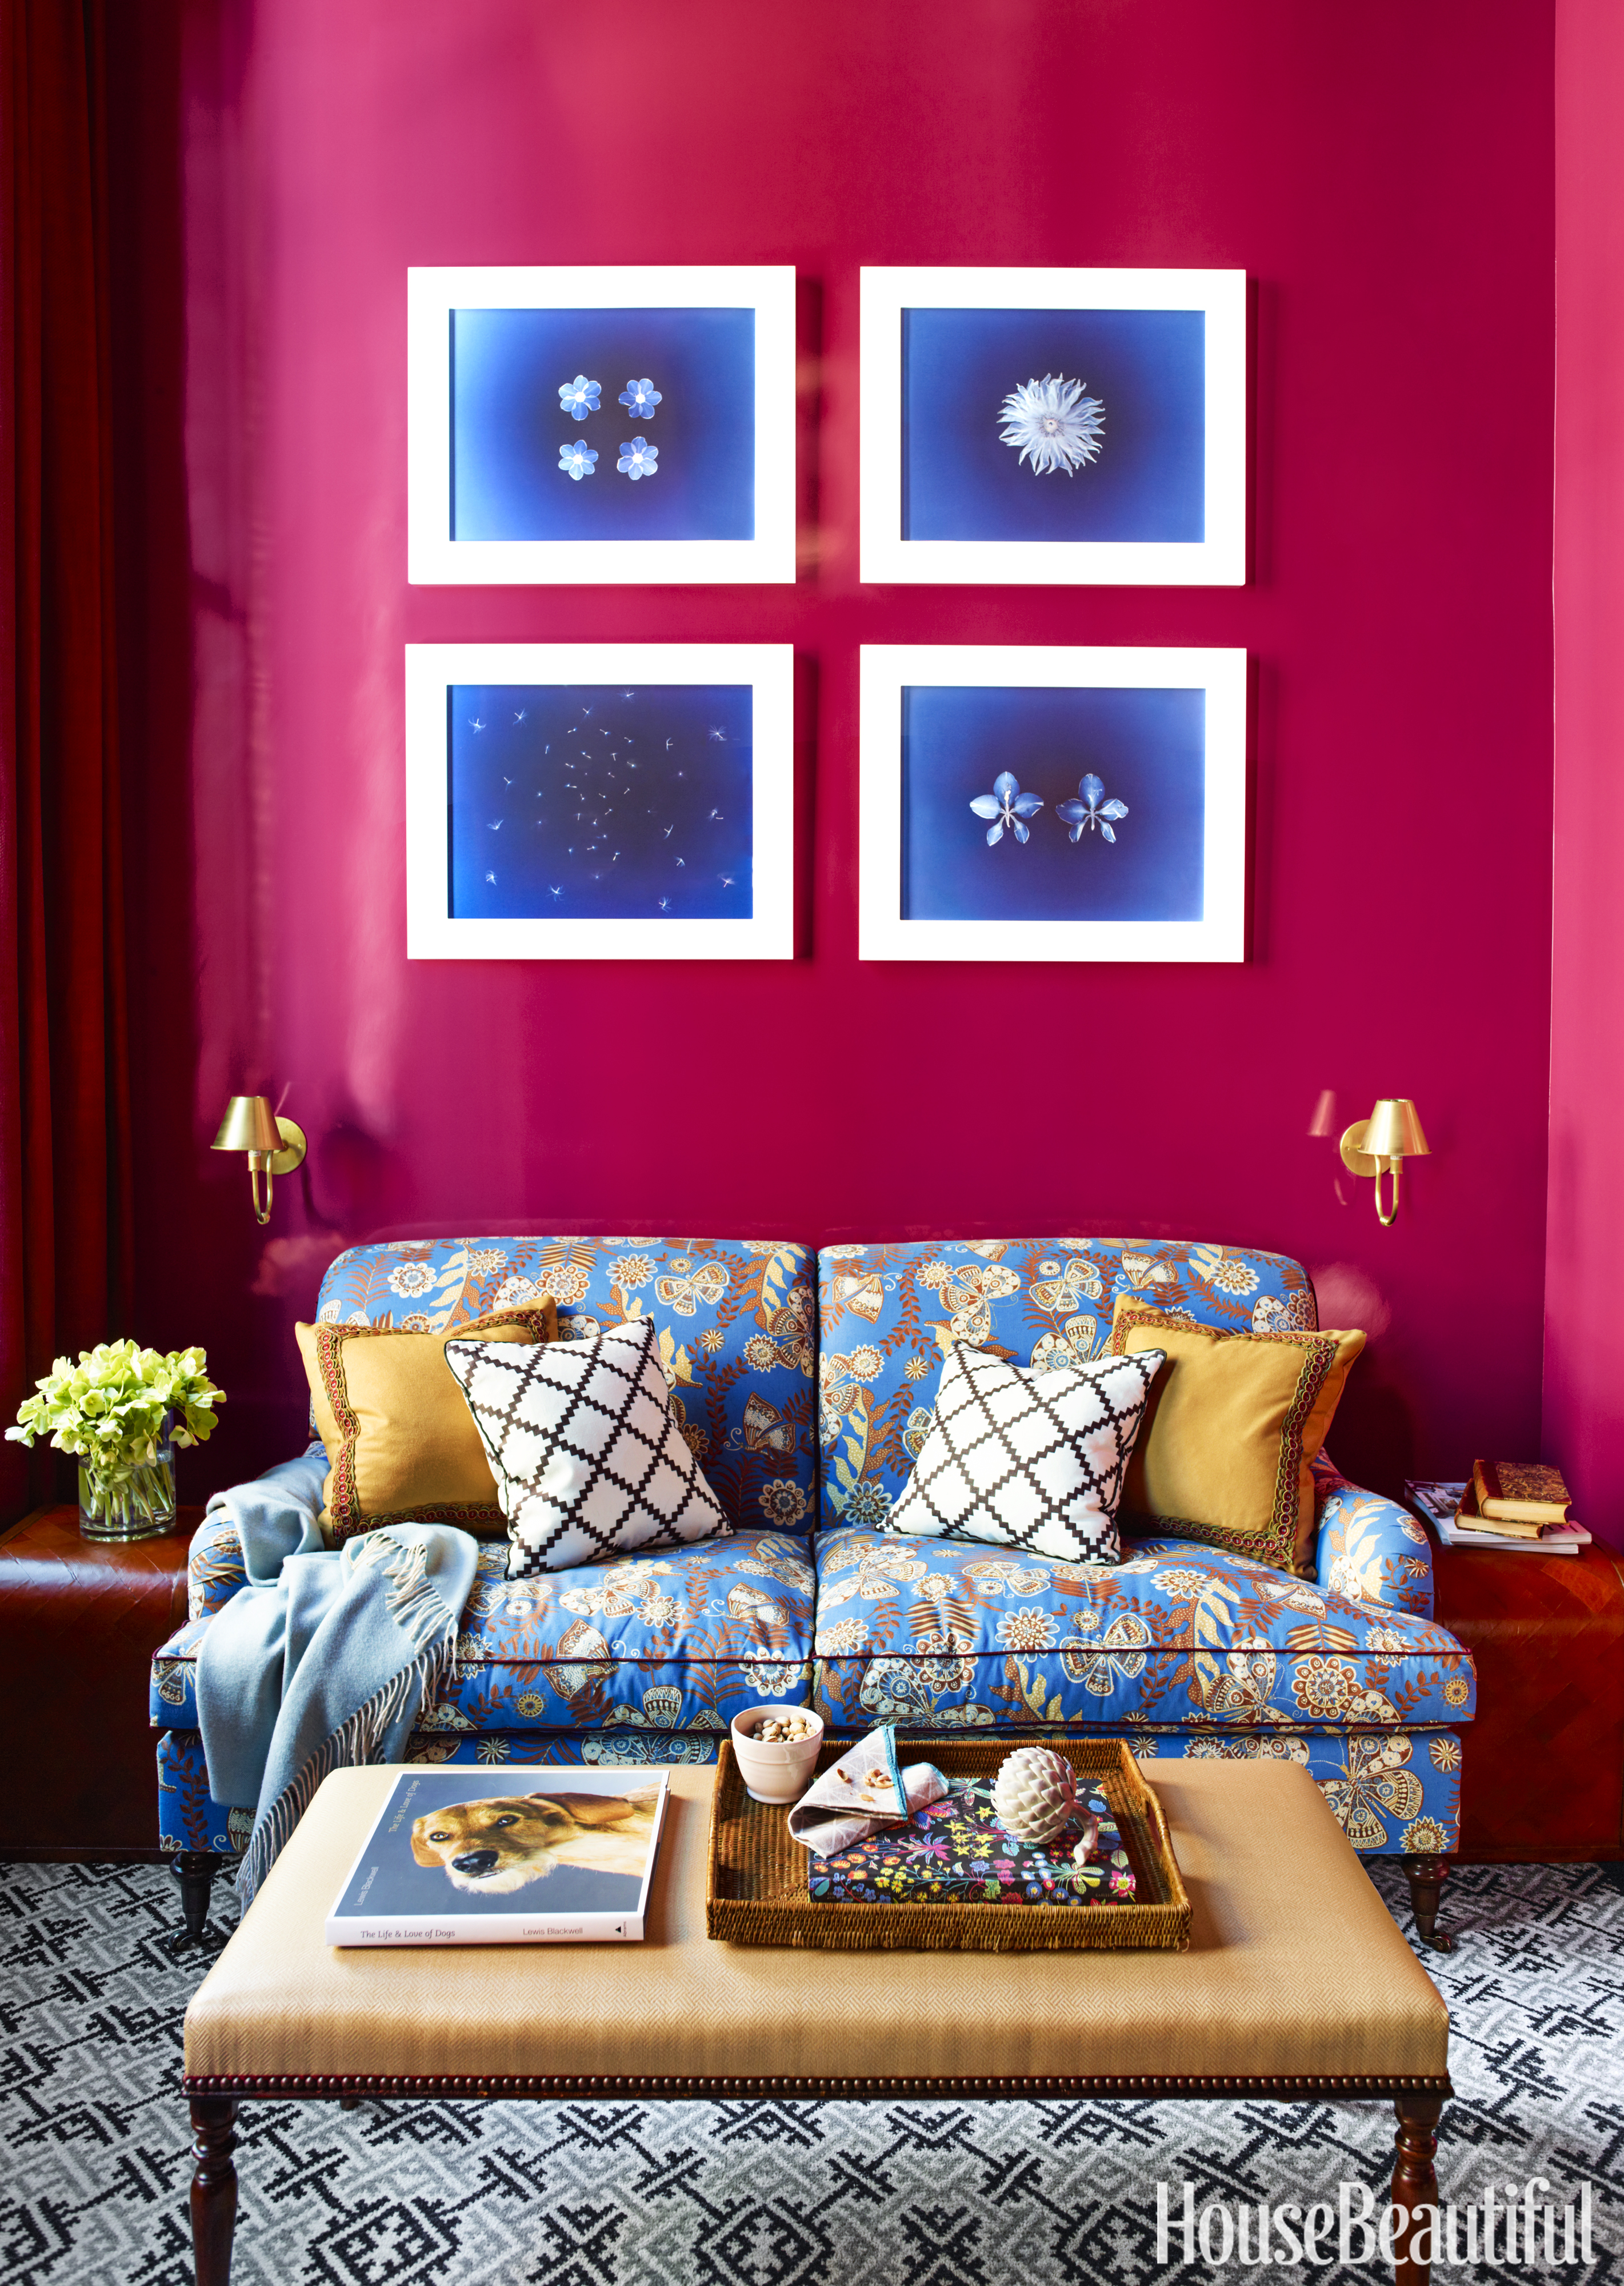 Colour For Study Room: Katie Ridder Interior Design